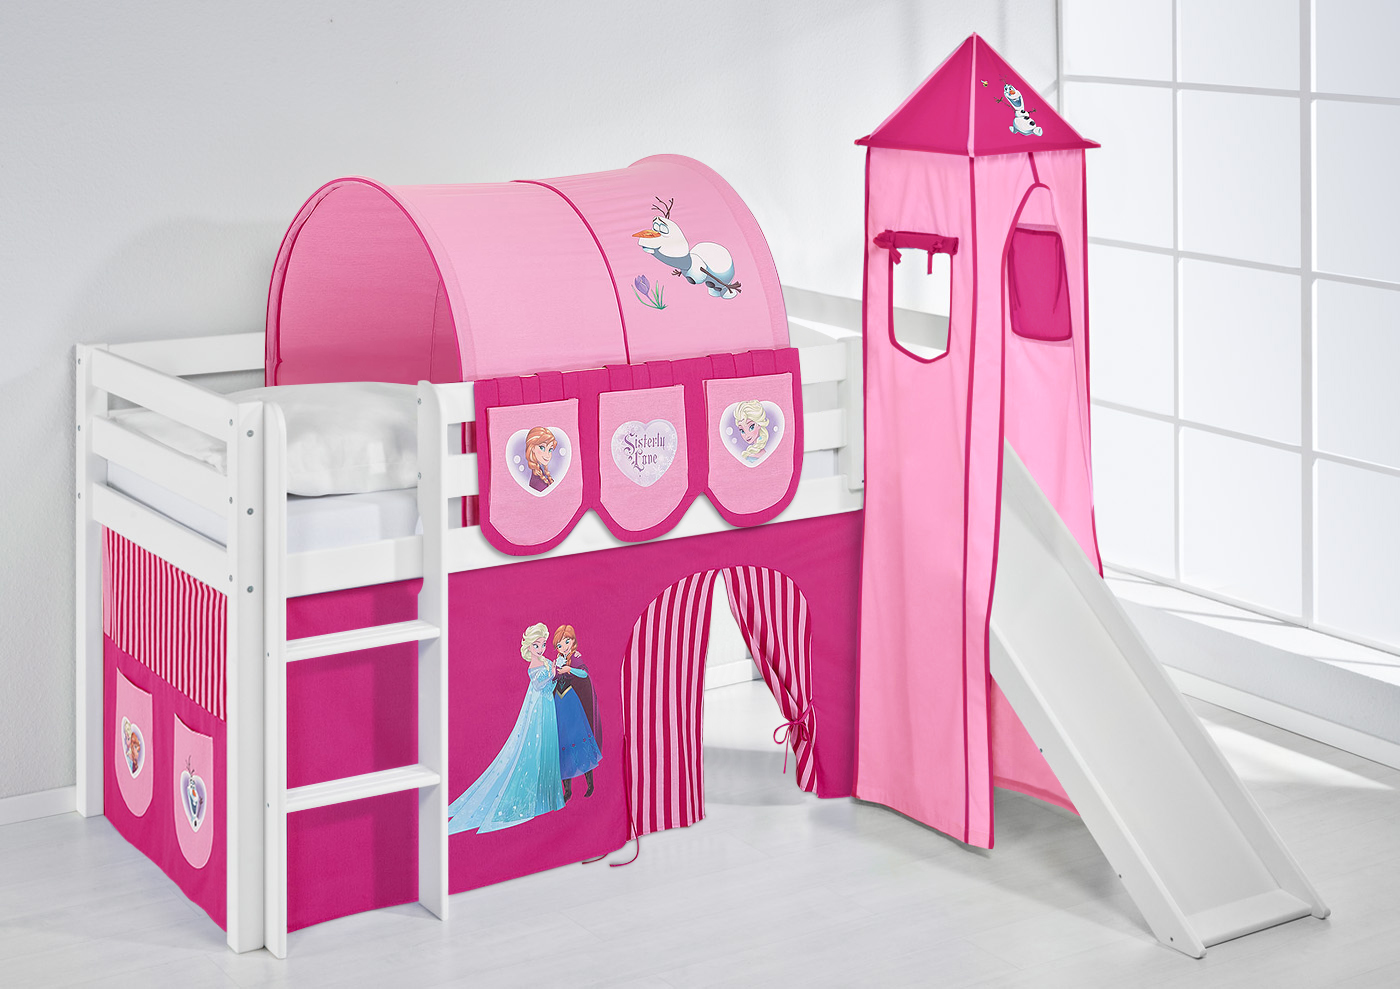 spielbett hochbett kinderbett kinder bett jelle mit turm. Black Bedroom Furniture Sets. Home Design Ideas